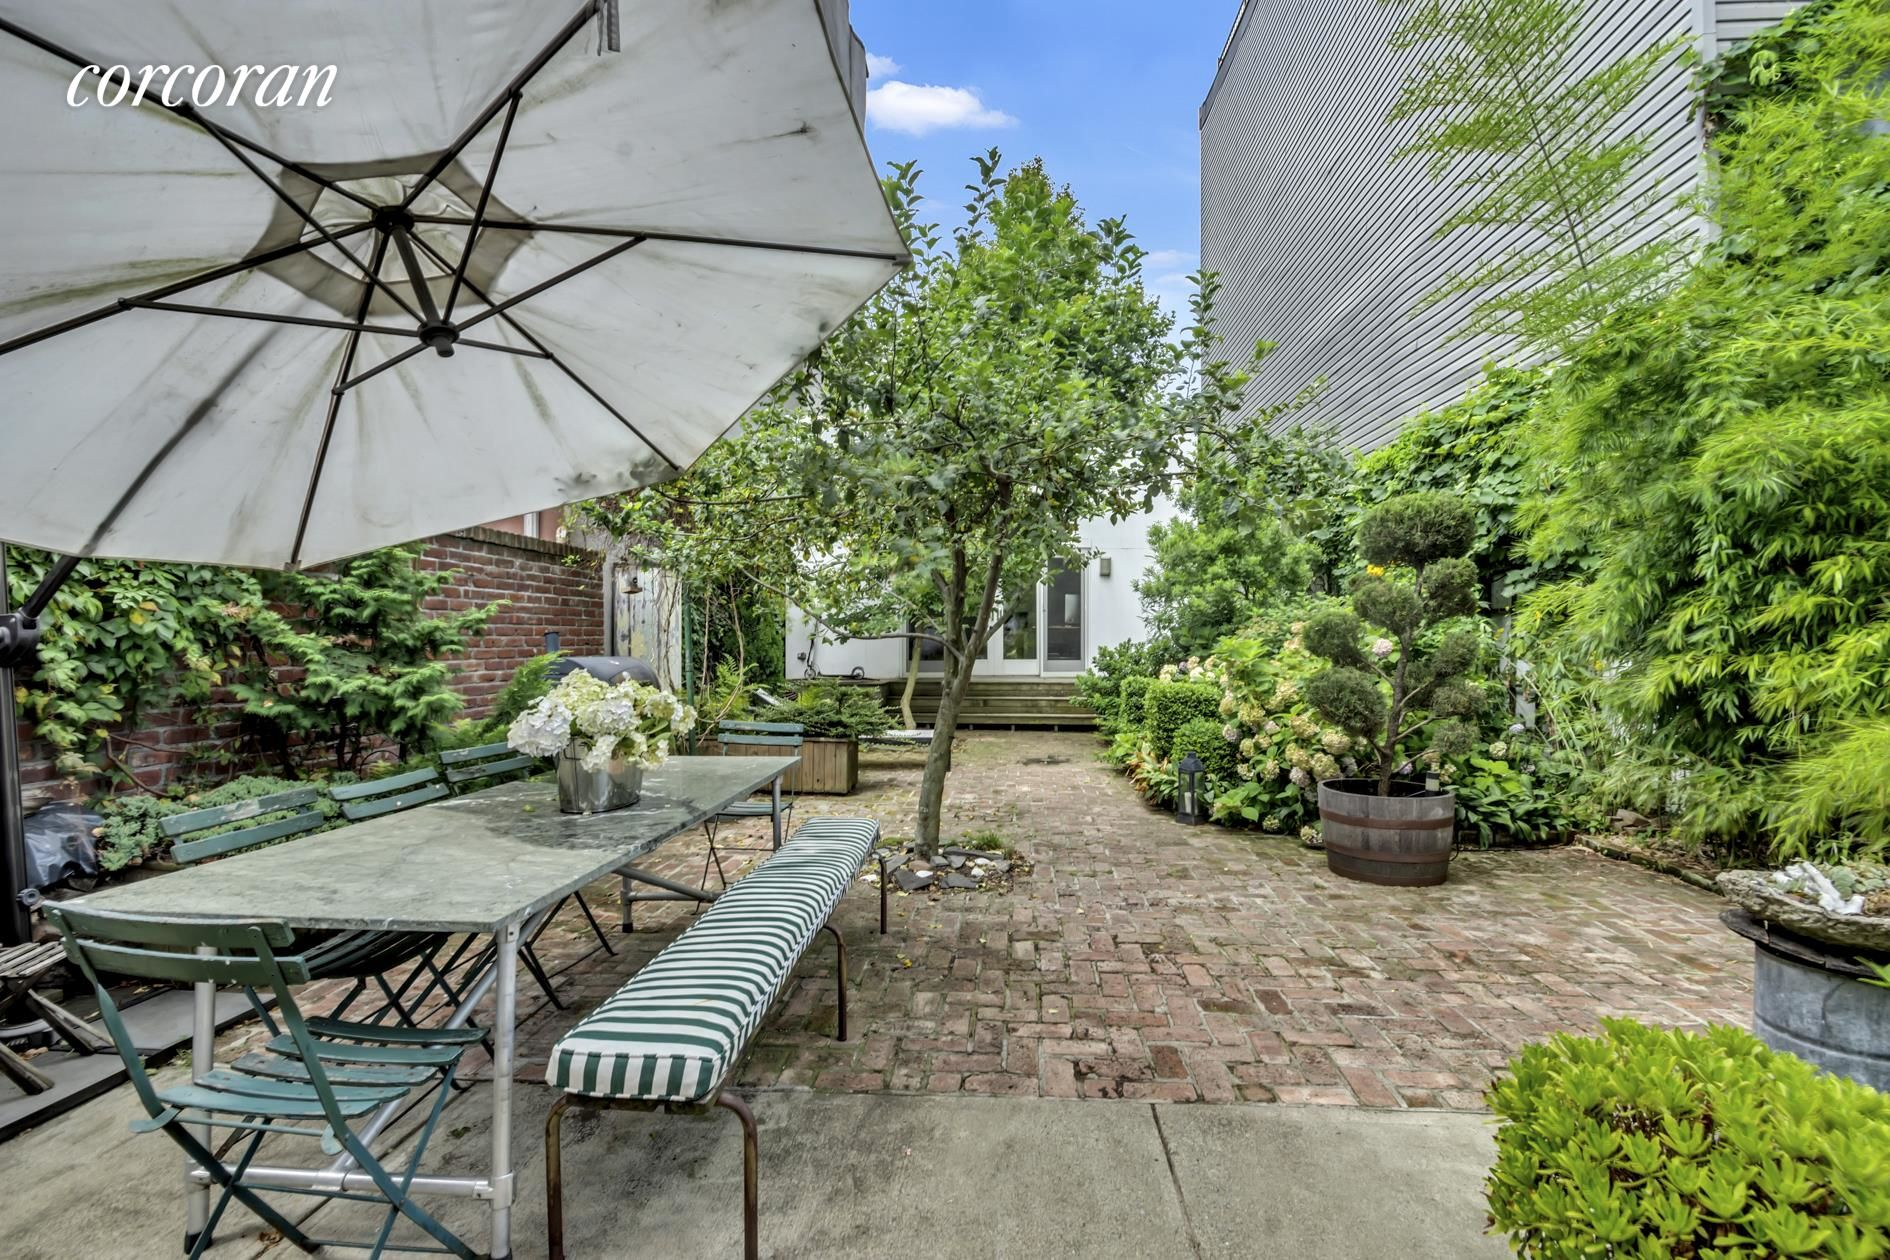 561 Union St Photo 14 - NYC-Real-Estate-668587